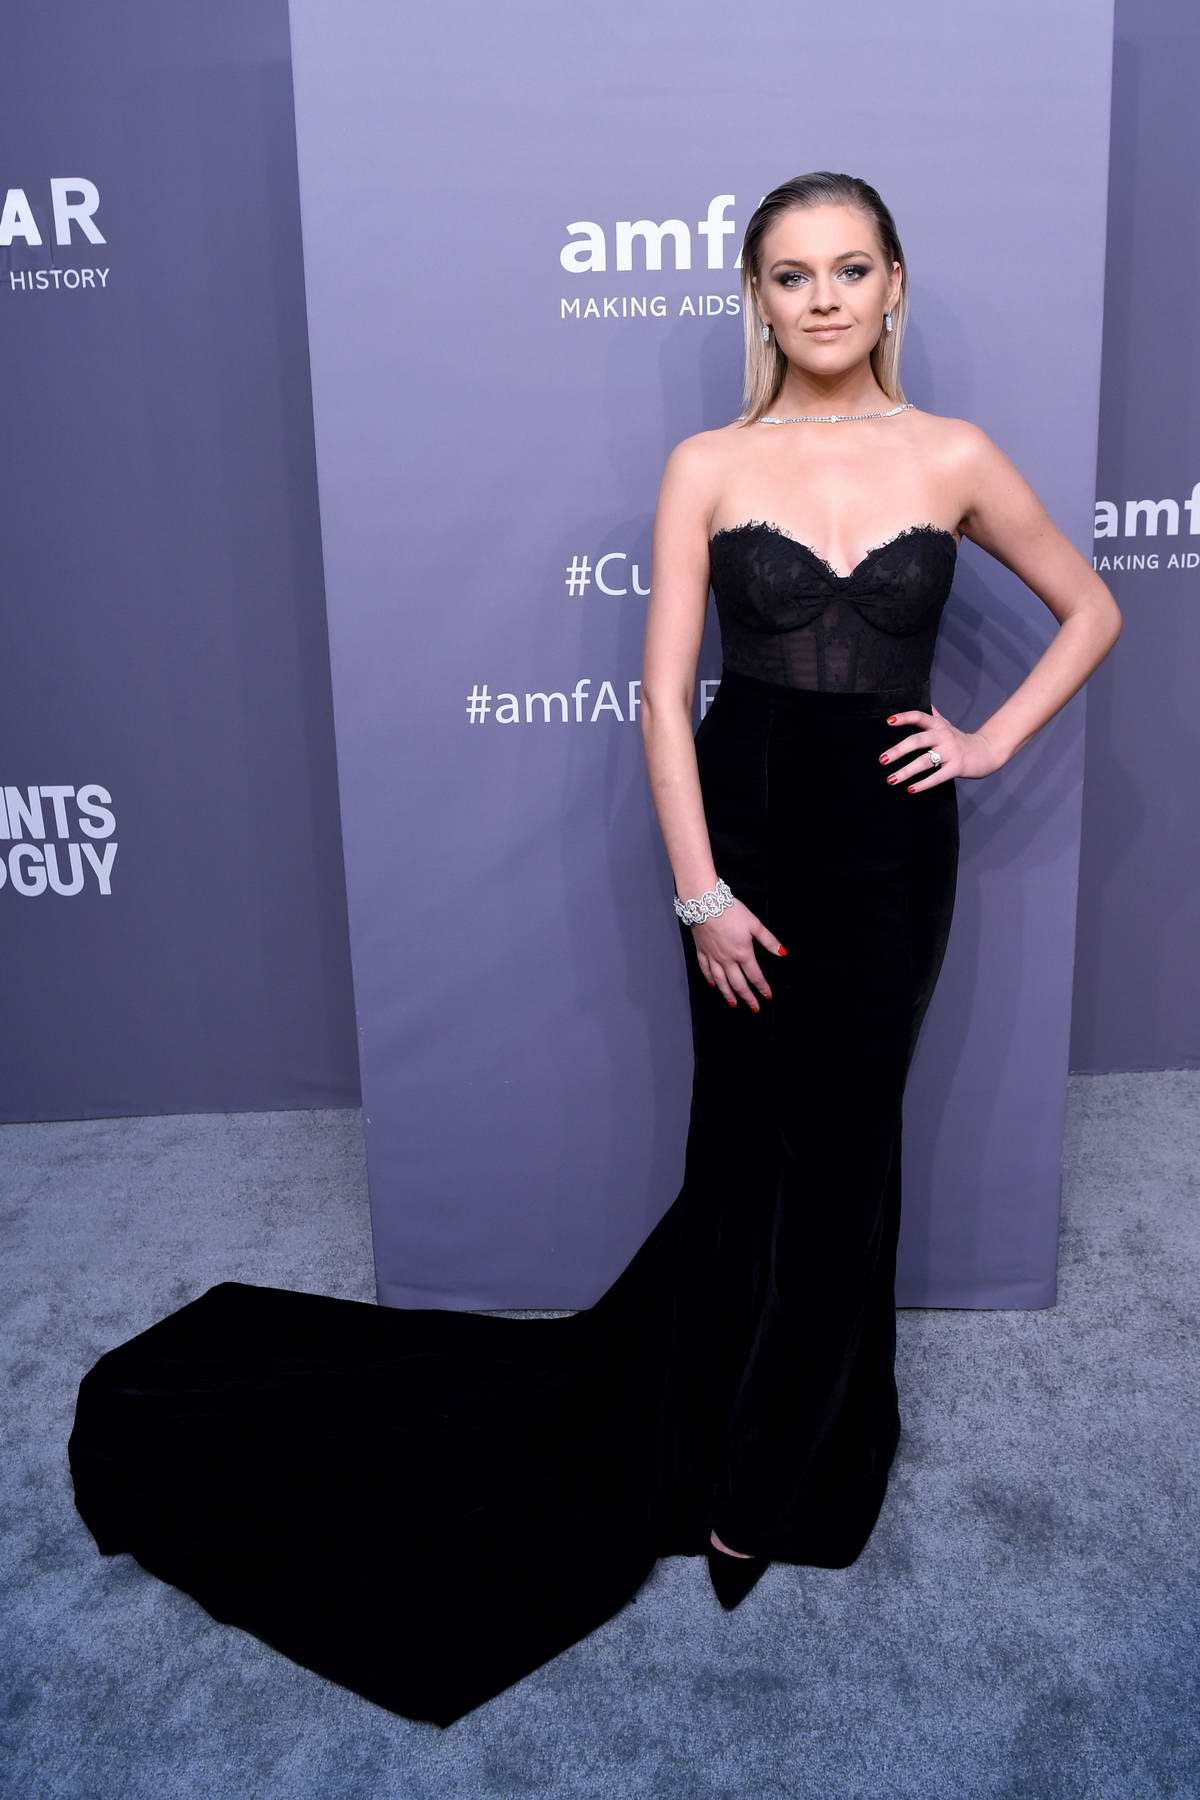 Kelsea Ballerini attends amfAR New York Gala 2019 at Cipriani Wall Street in New York City